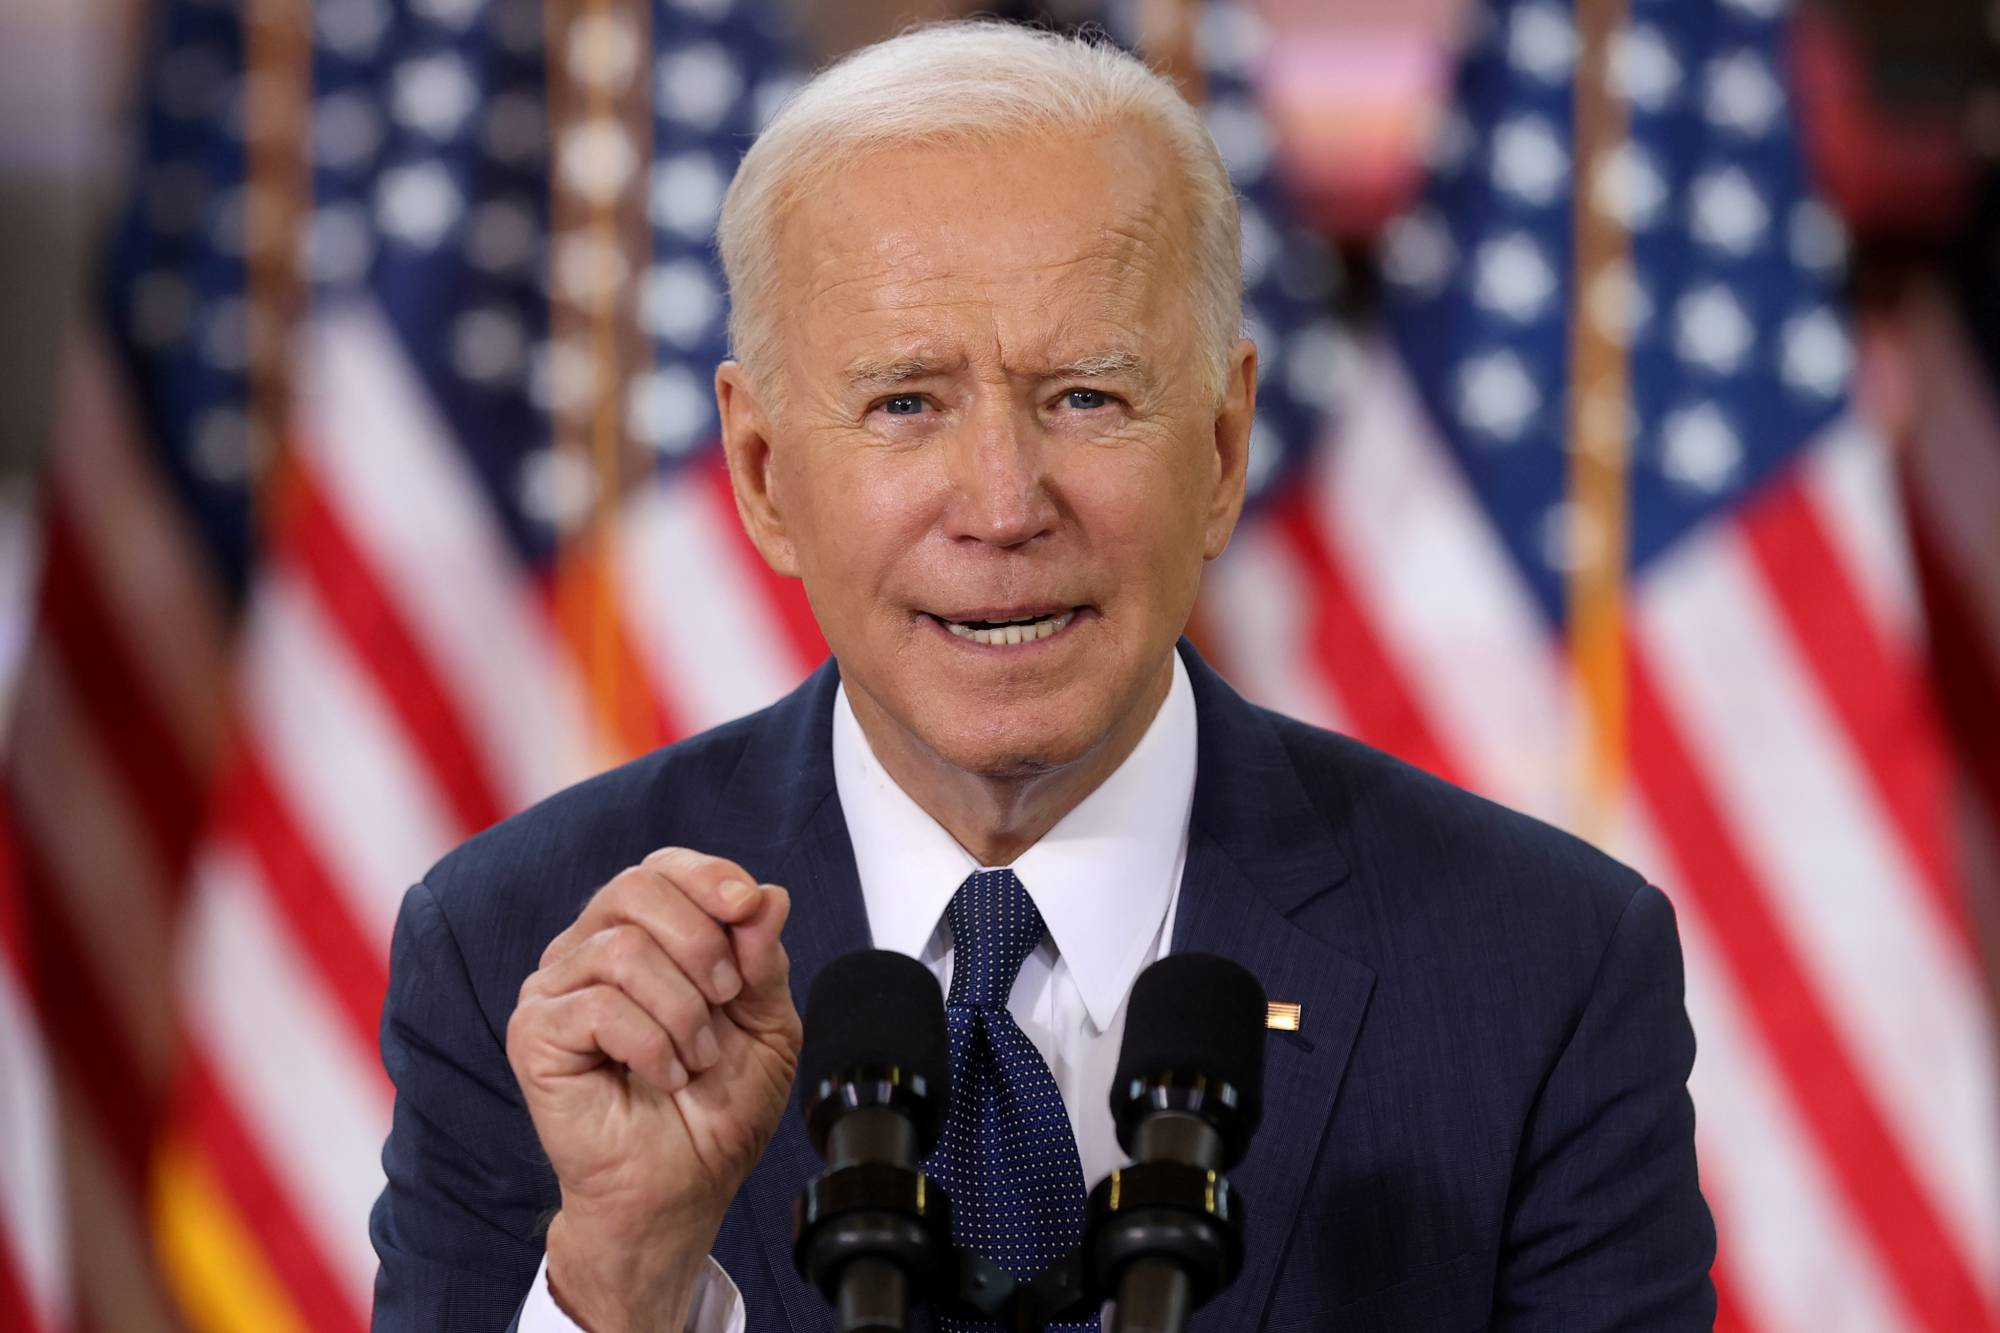 U.S. President Joe Biden gives a speech on his $2 trillion infrastructure plan during an event in Pittsburgh on March 31.  | REUTERS